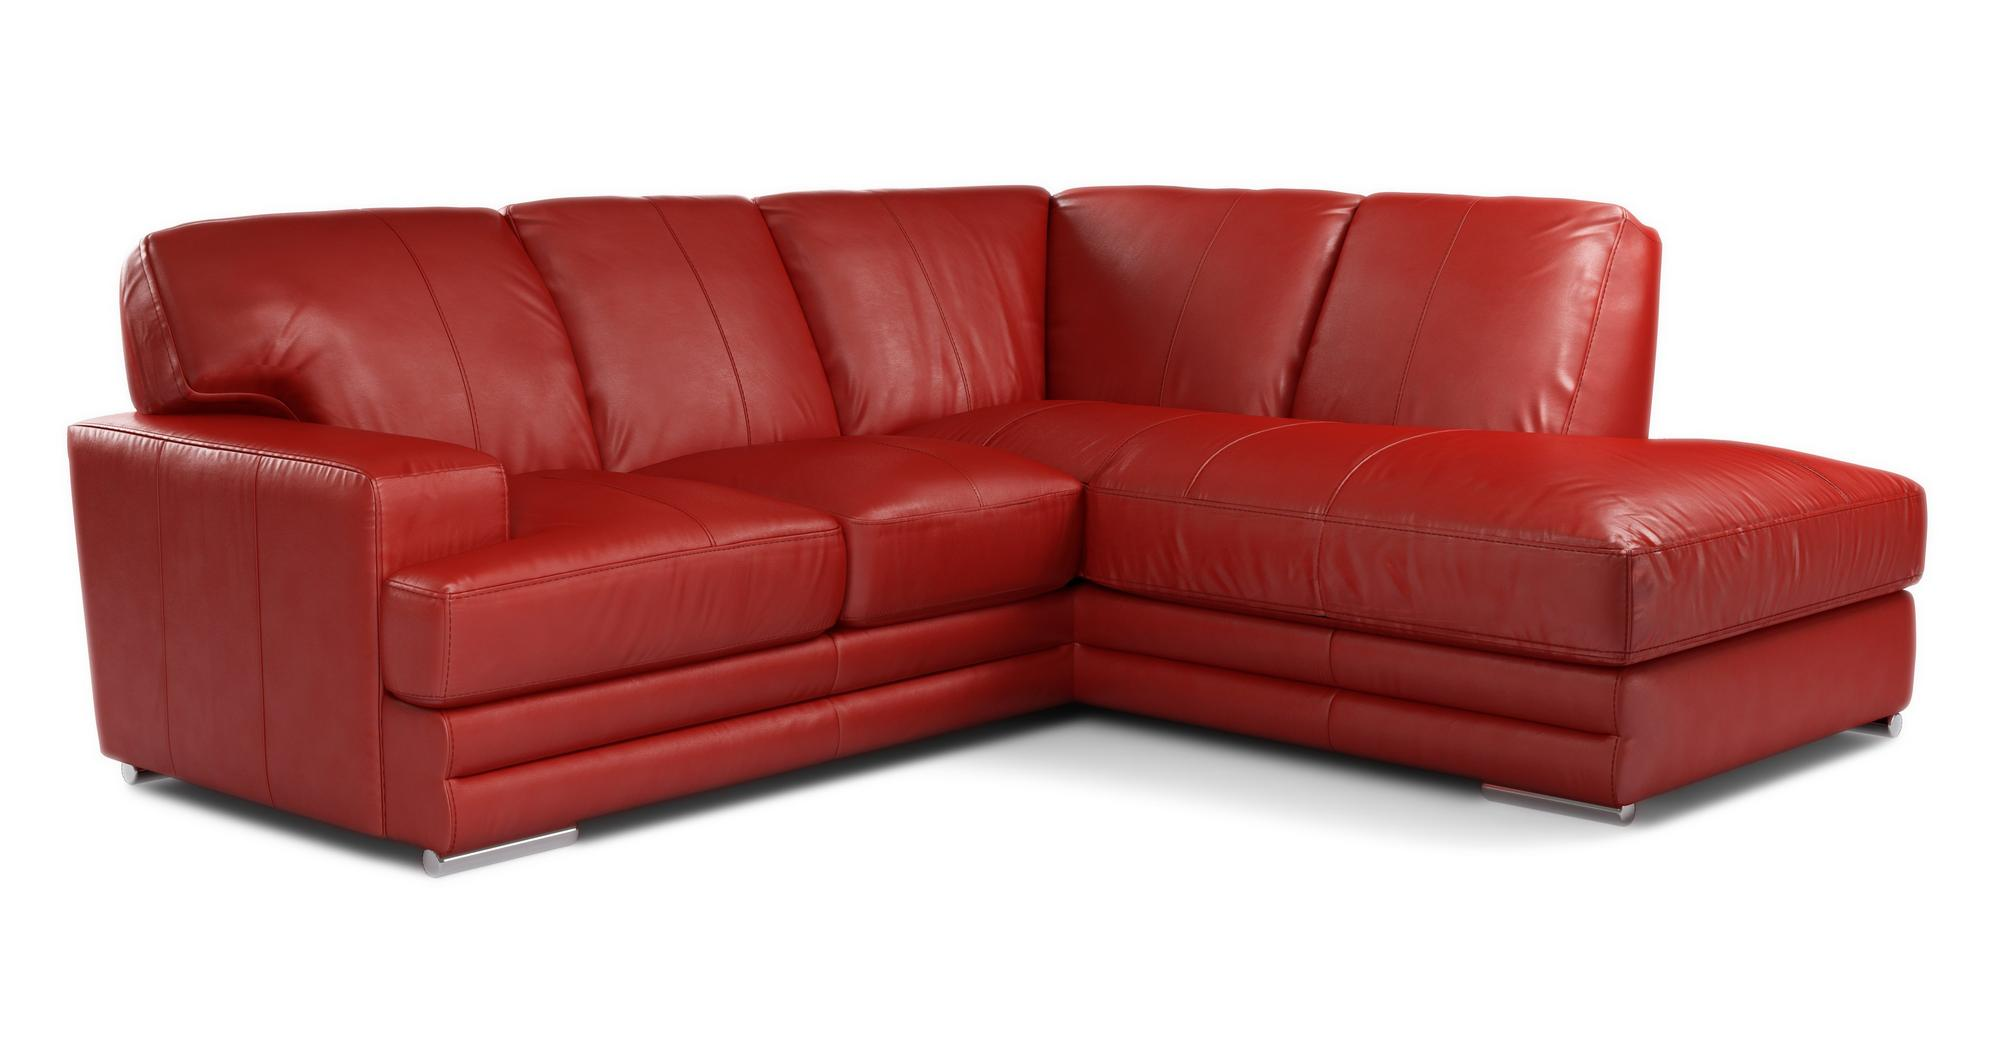 DFS Glow Enzo Red Leather Left Hand Facing Sofa Armchair